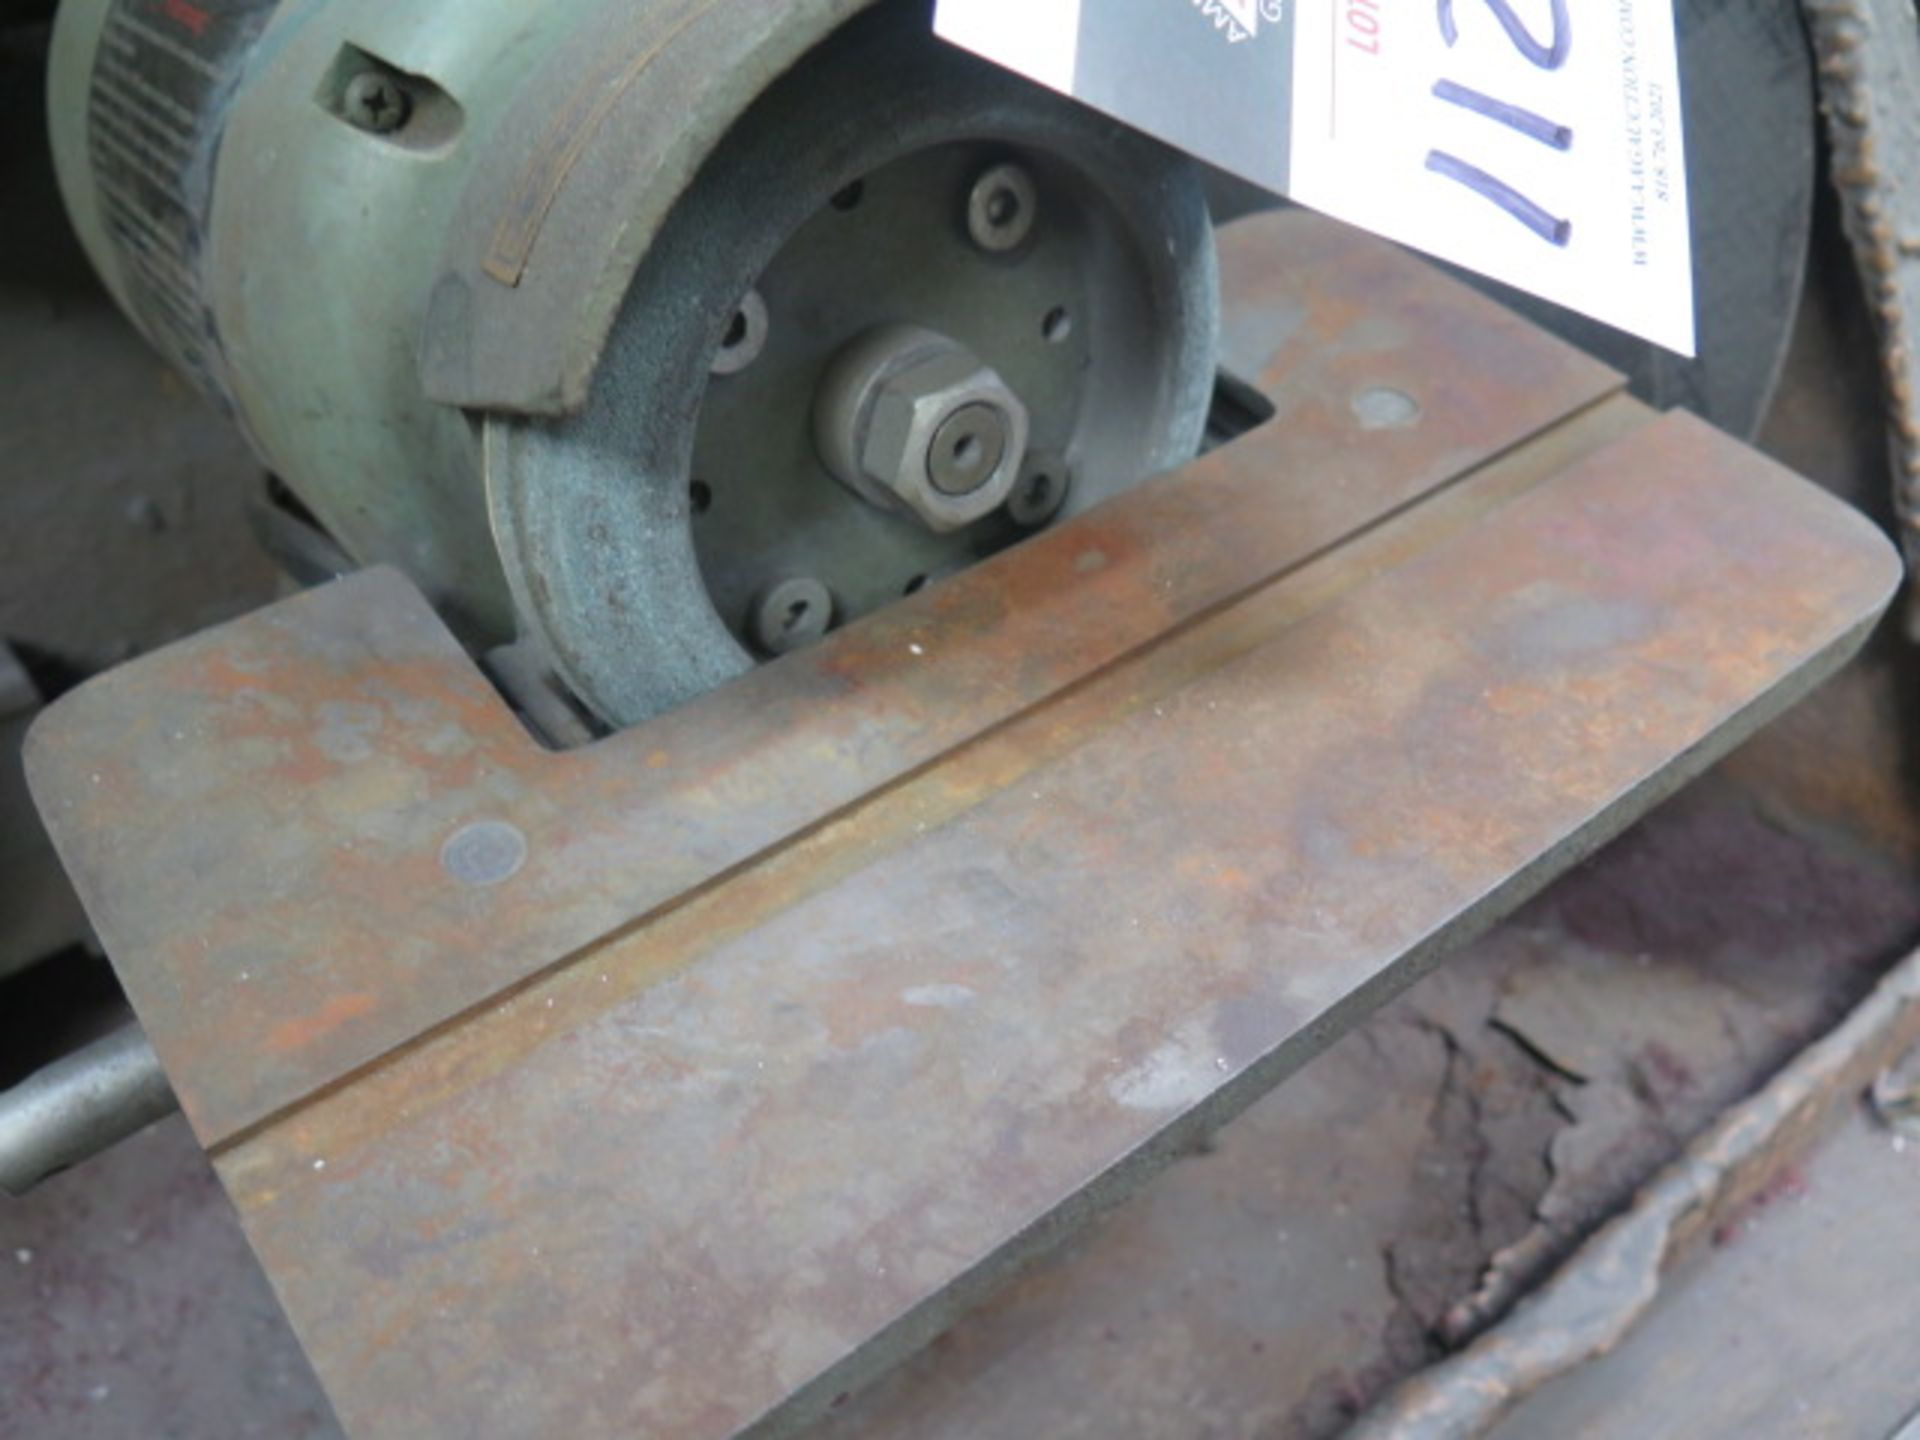 Import Carbide Tool Grinder (NEEDS REPAIR) (SOLD AS-IS - NO WARRANTY) - Image 3 of 6